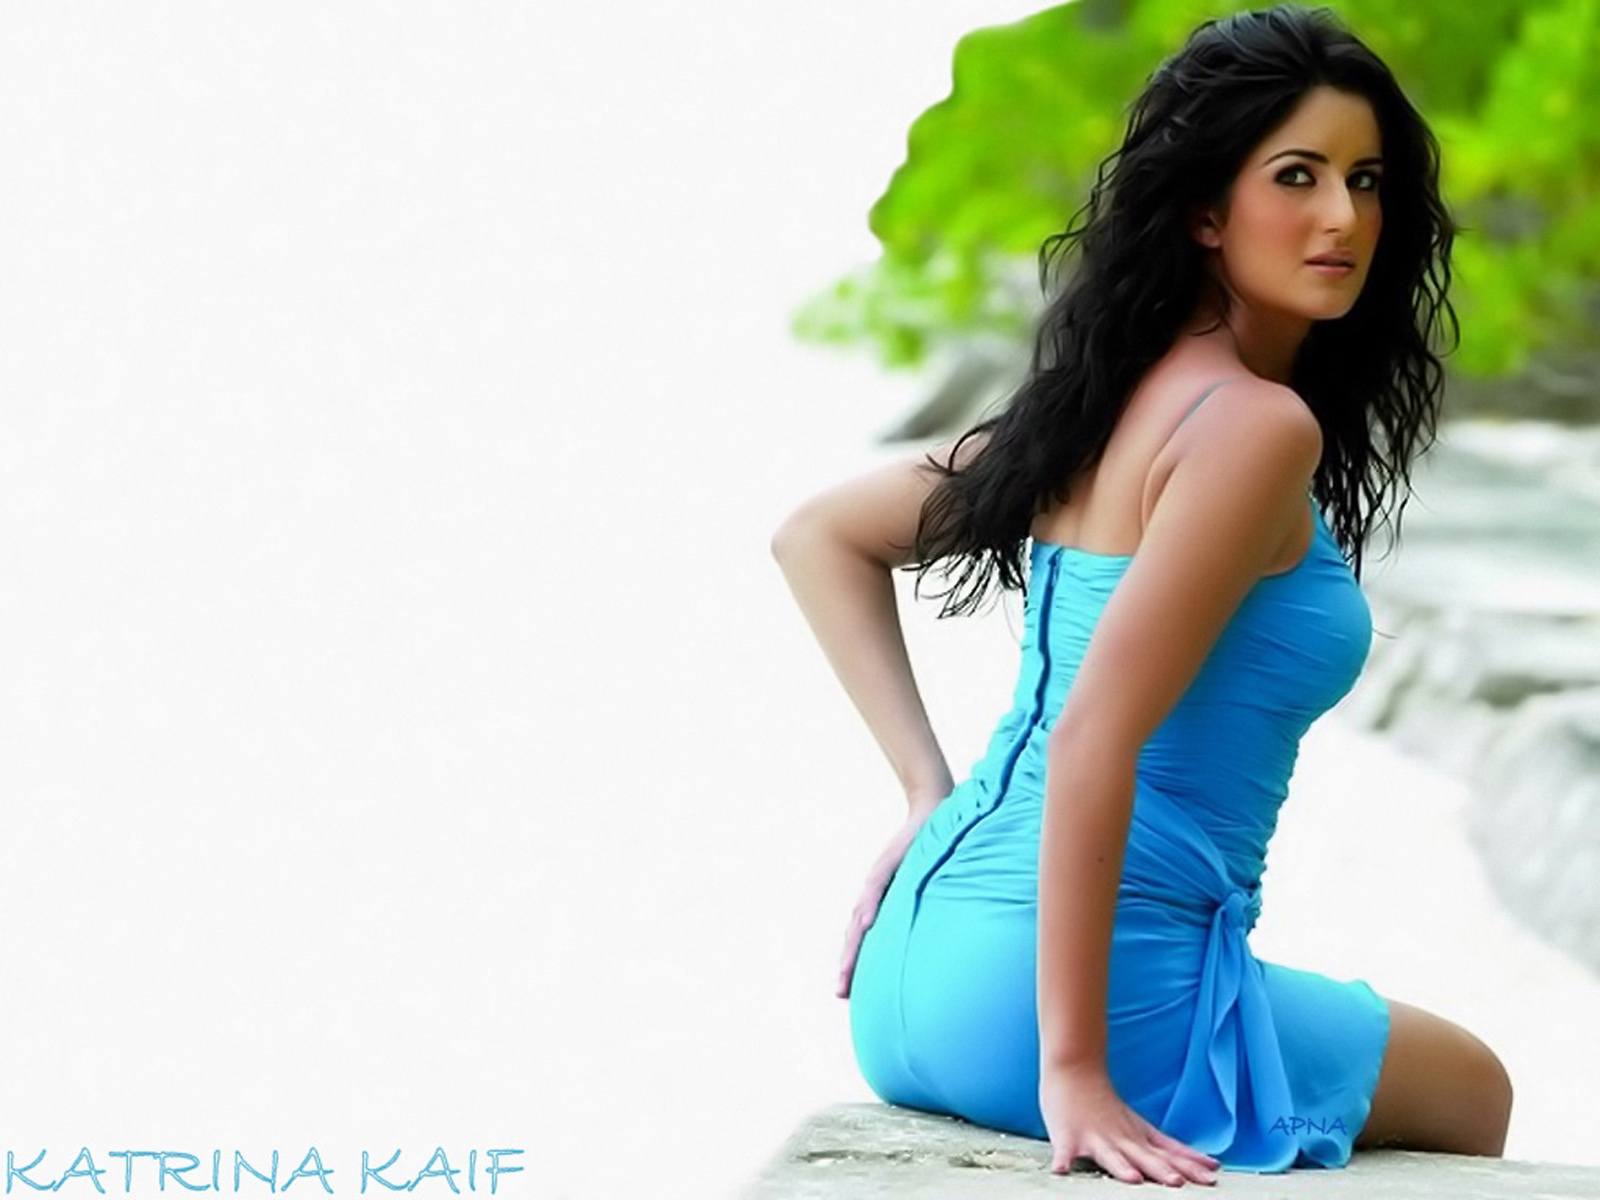 Katrina Kaif Naked Video